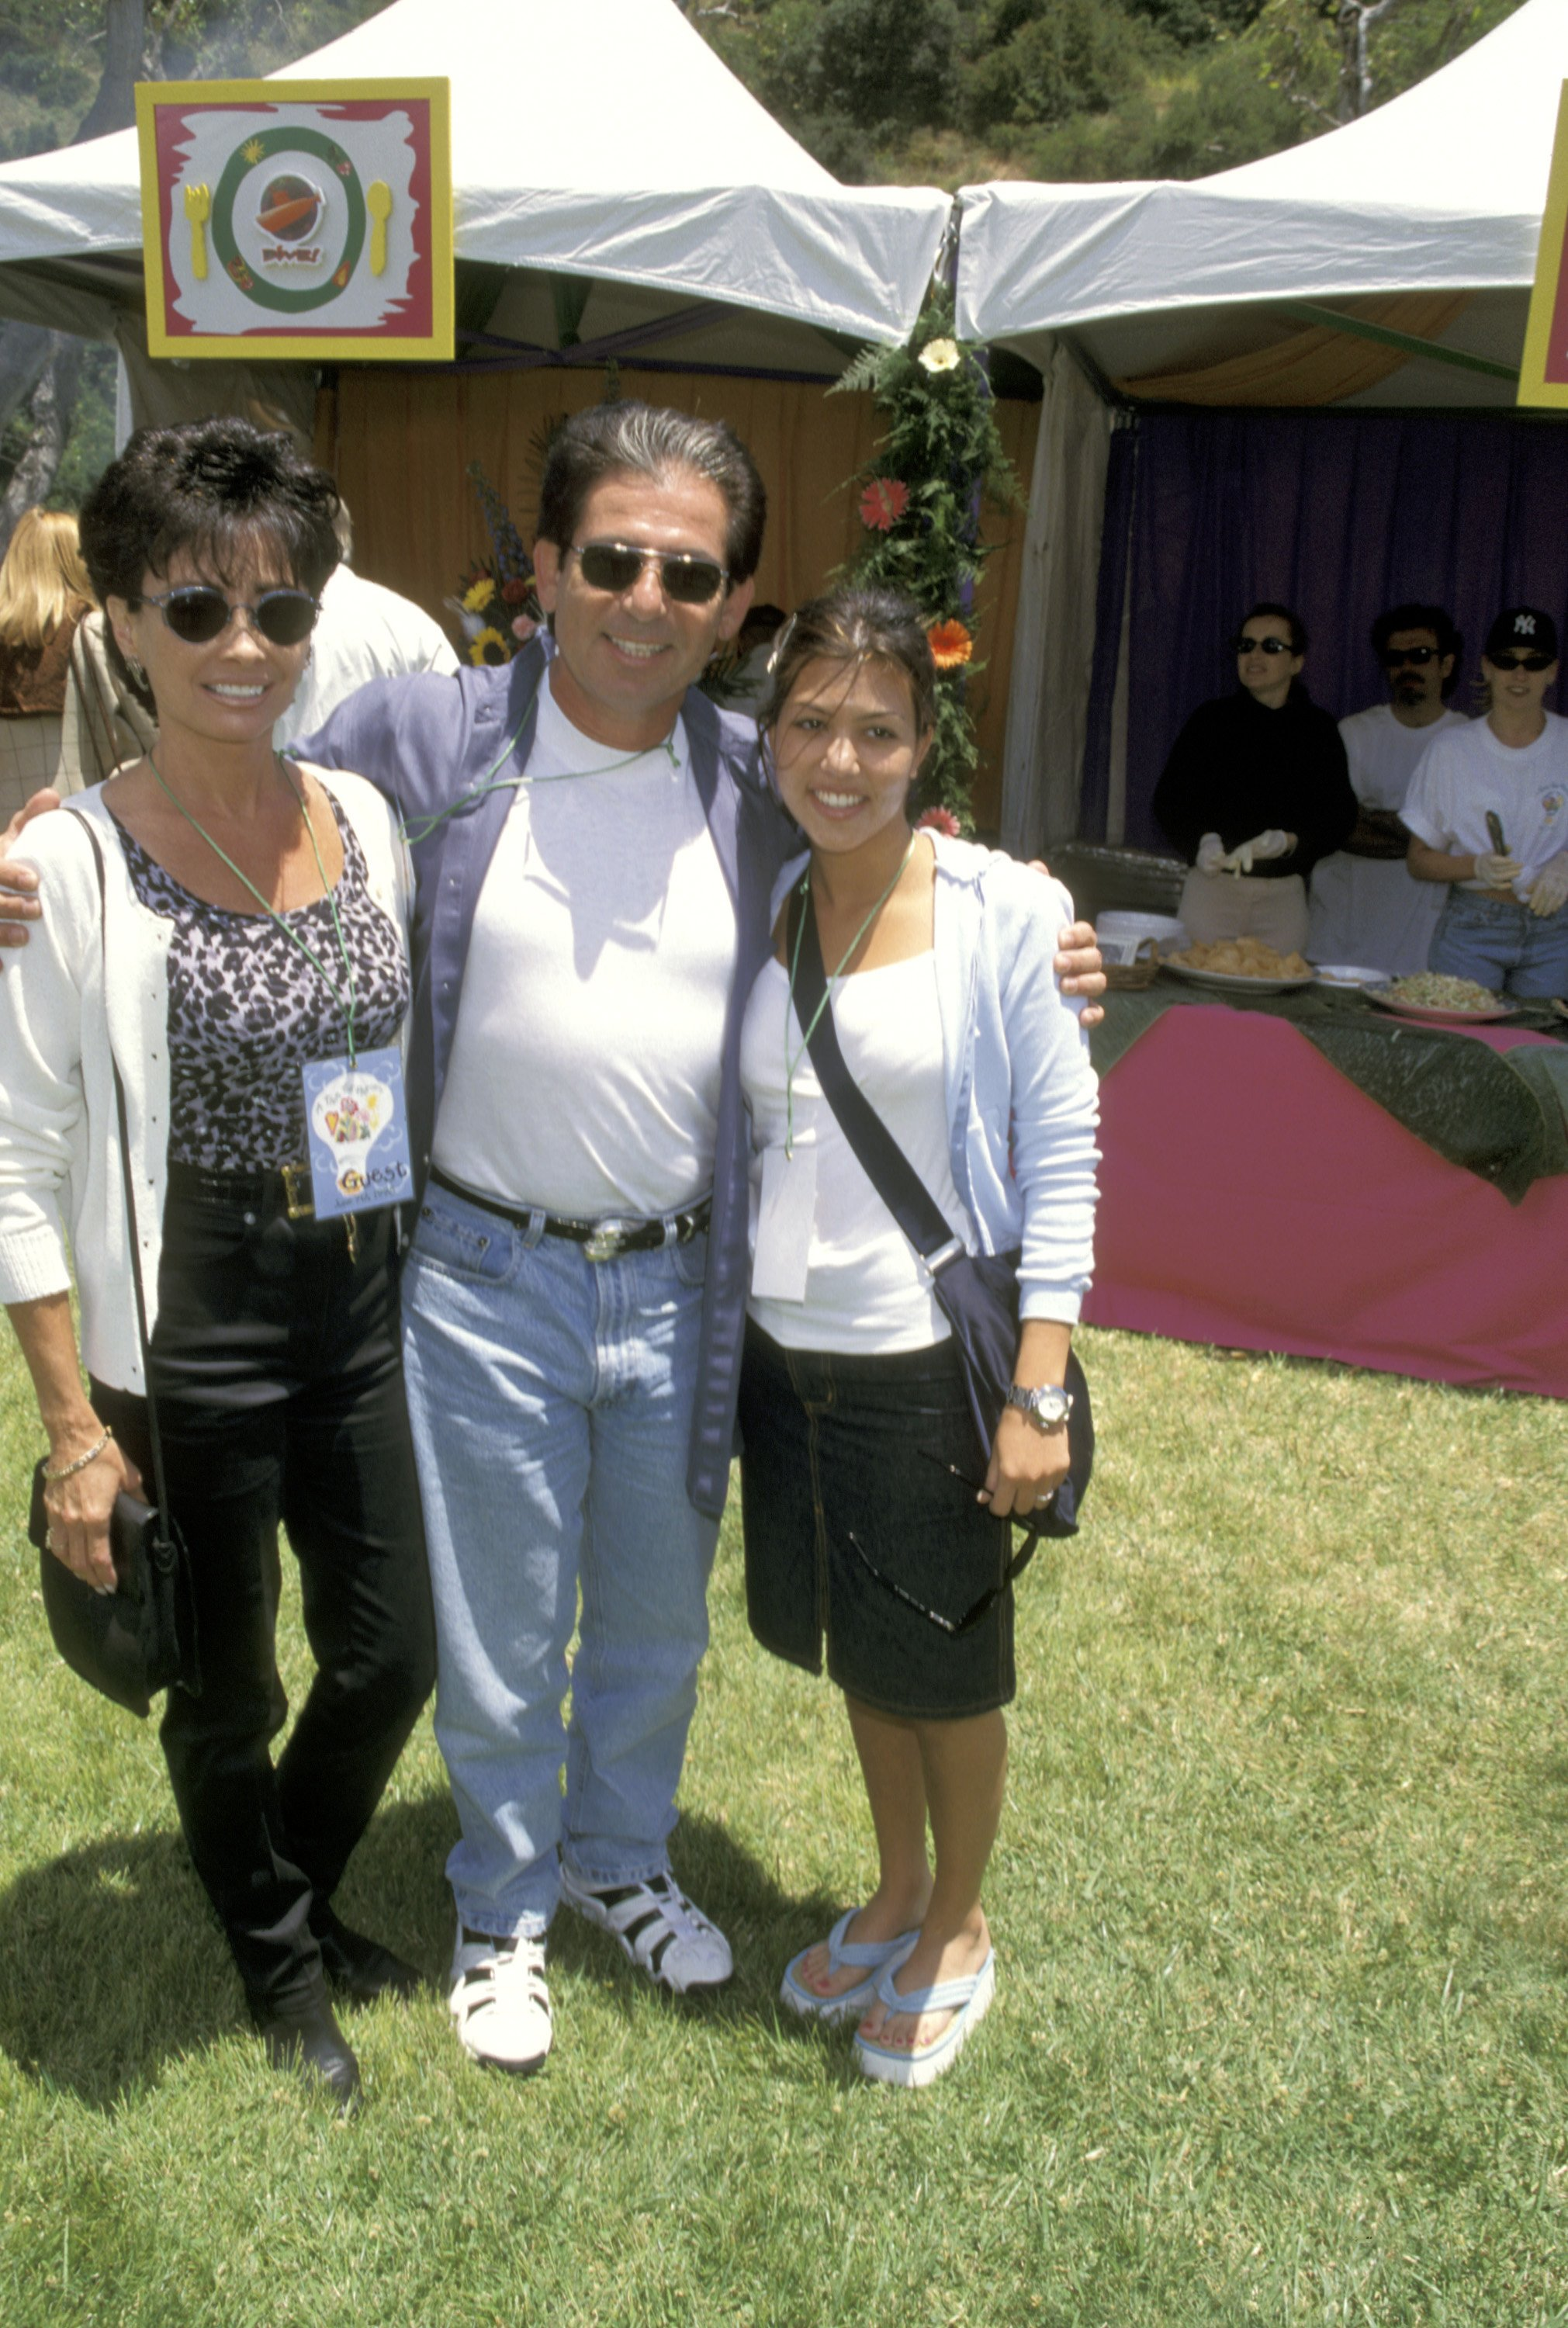 Robert Kardashian and daughter Kourtney at the Ninth Annual 'A Time For Heroes' E. Glaser Pediatric AIDS Association Benefit in 1998 | Source: Getty Images